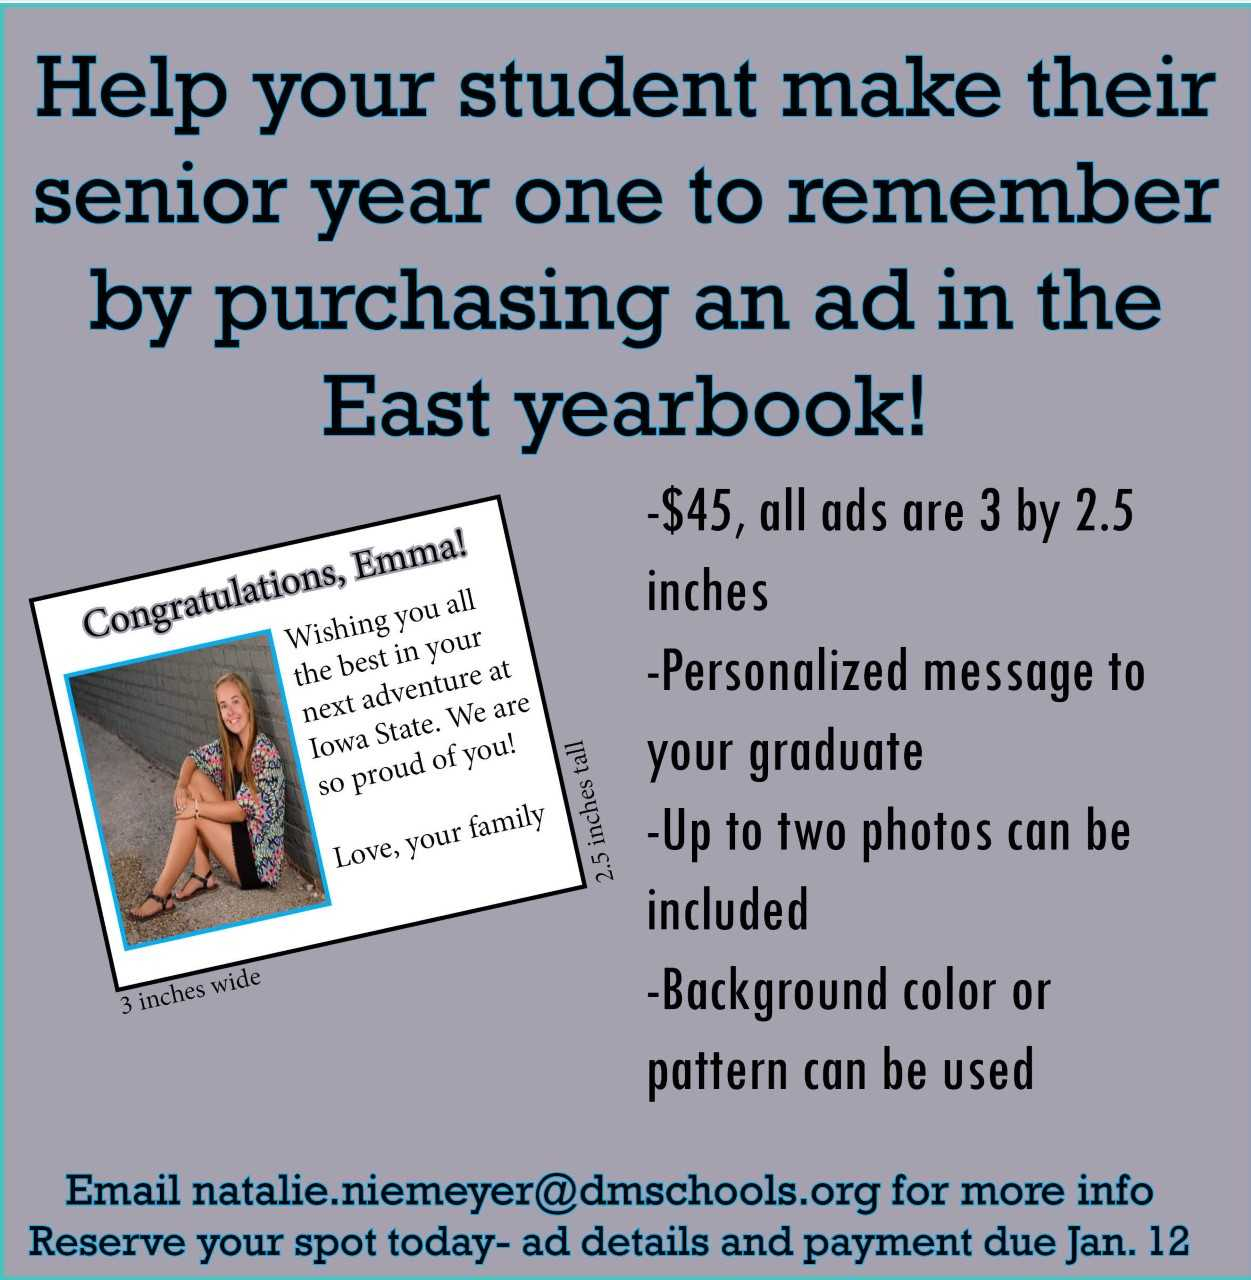 Information for Purchasing Yearbook Ads